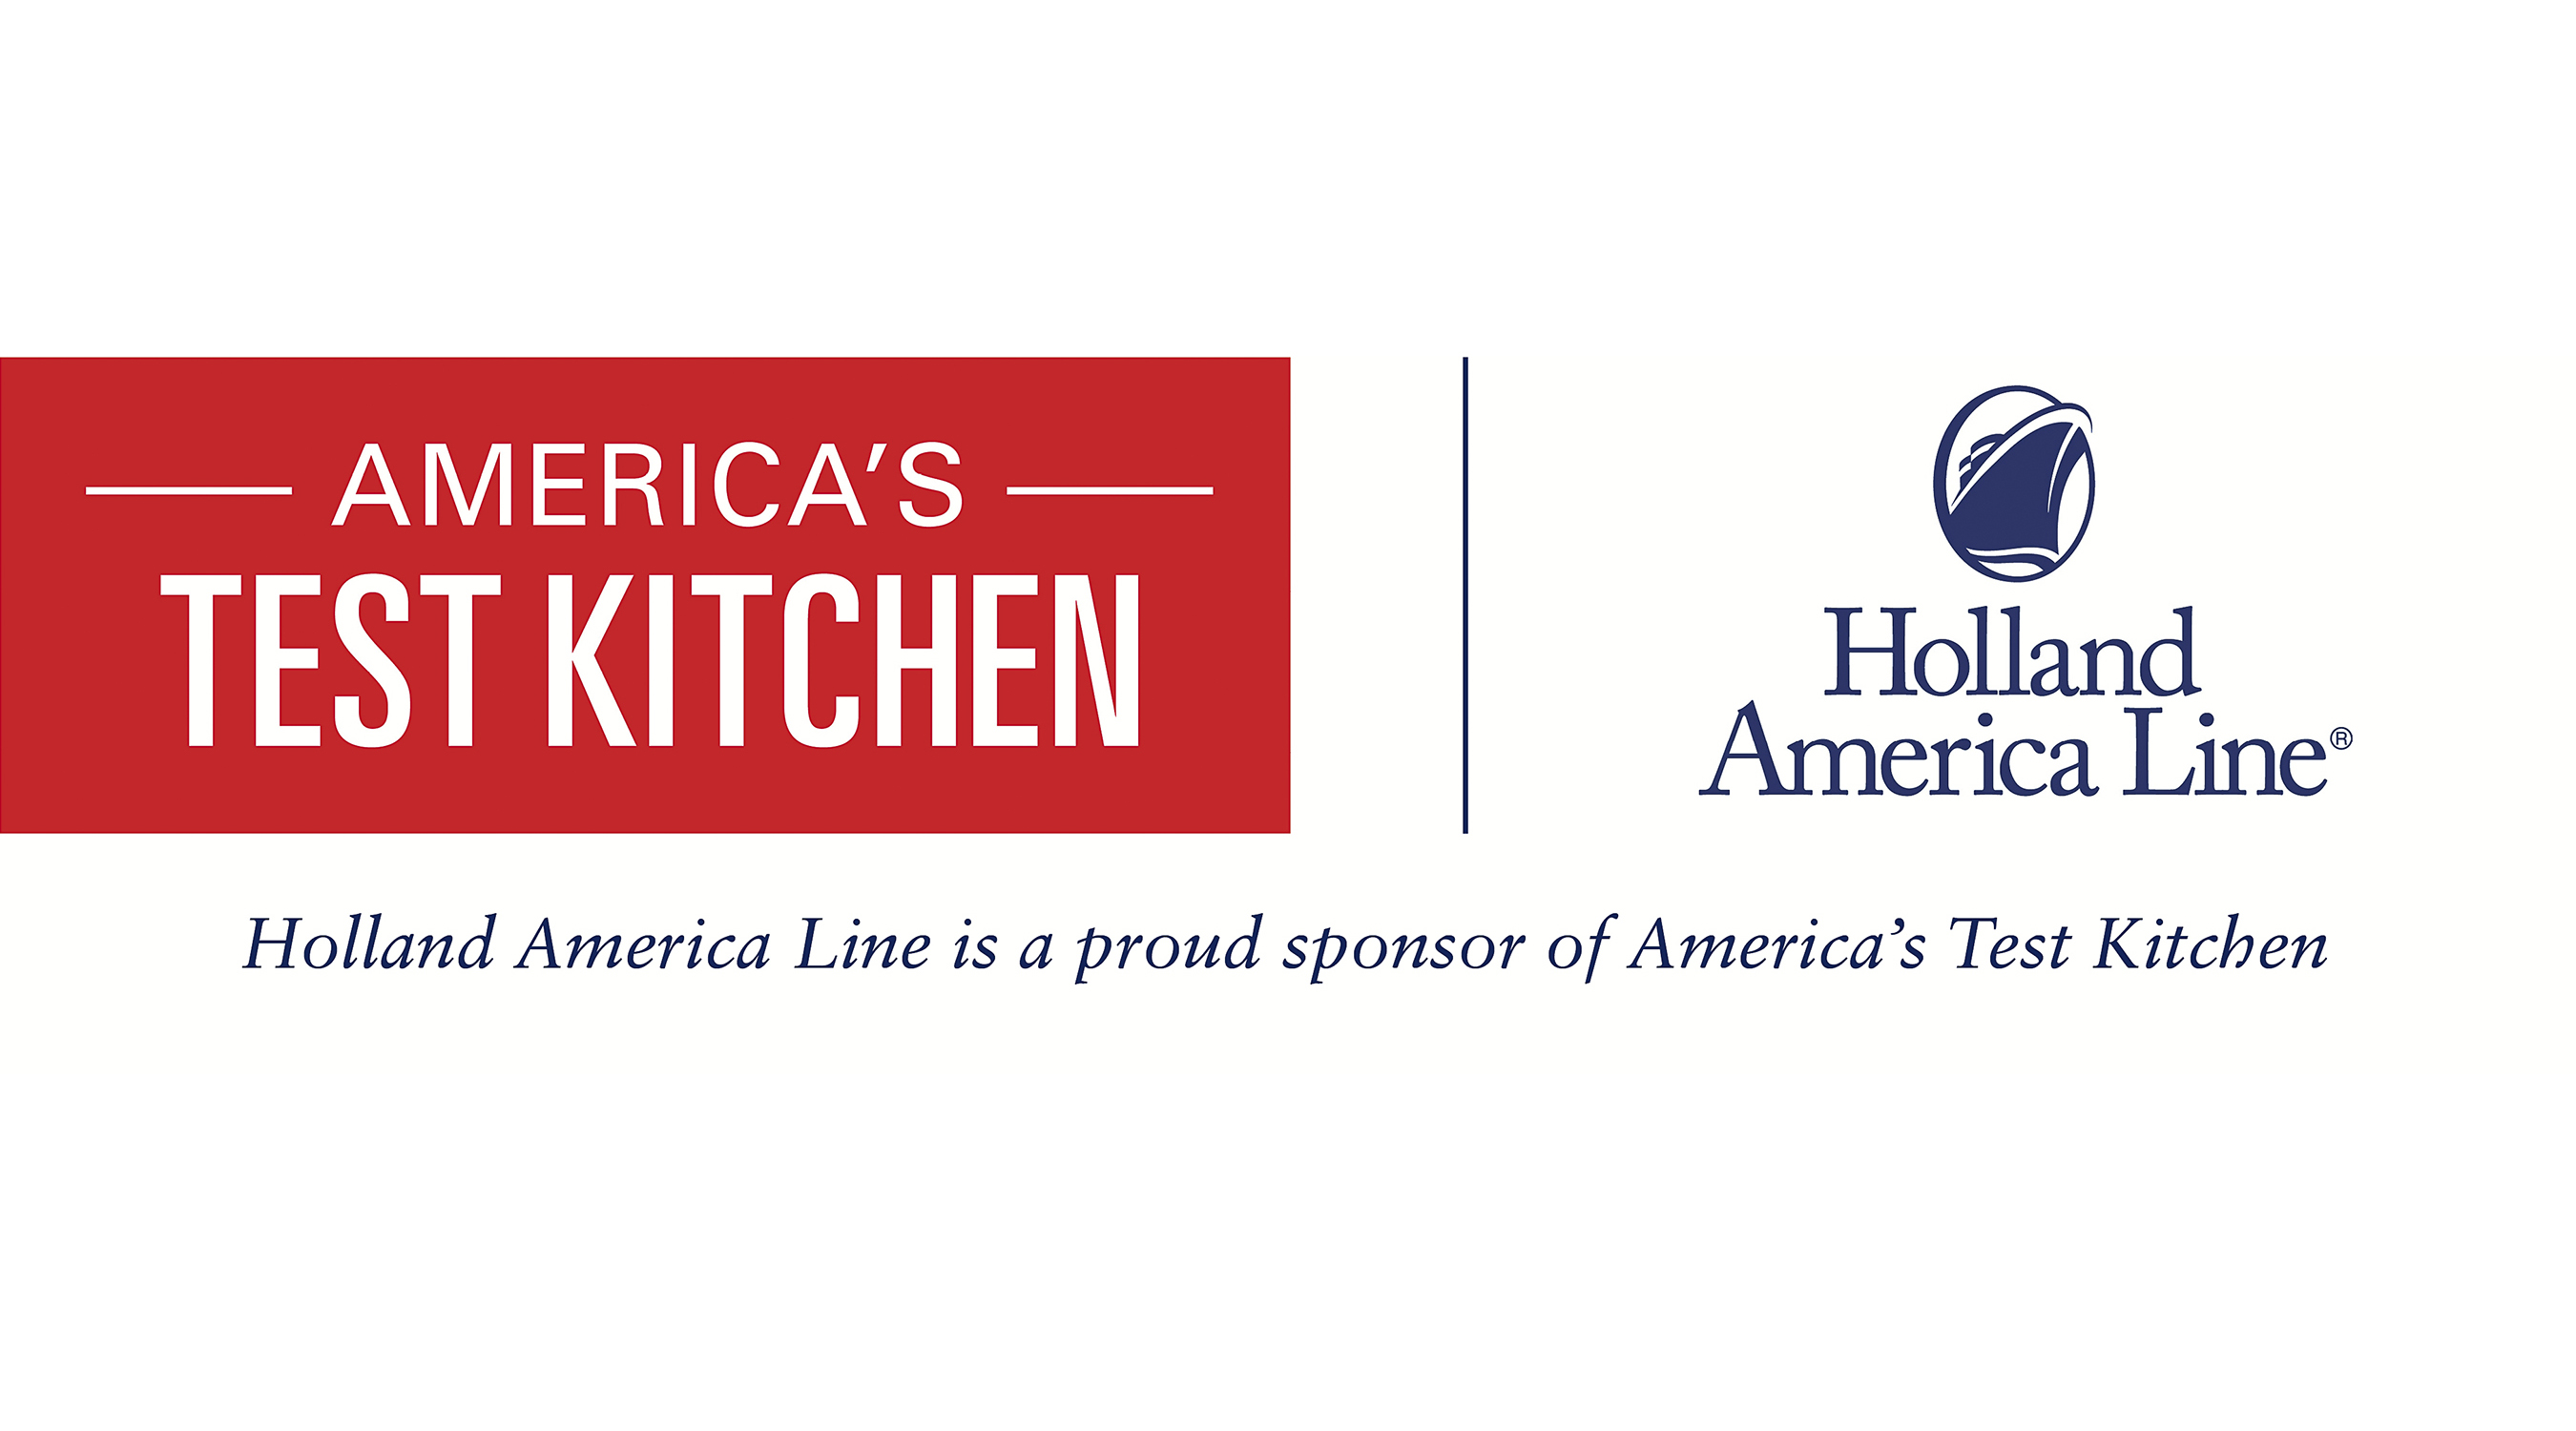 Holland America Line is a proud sponsor of America's Test Kitchen.